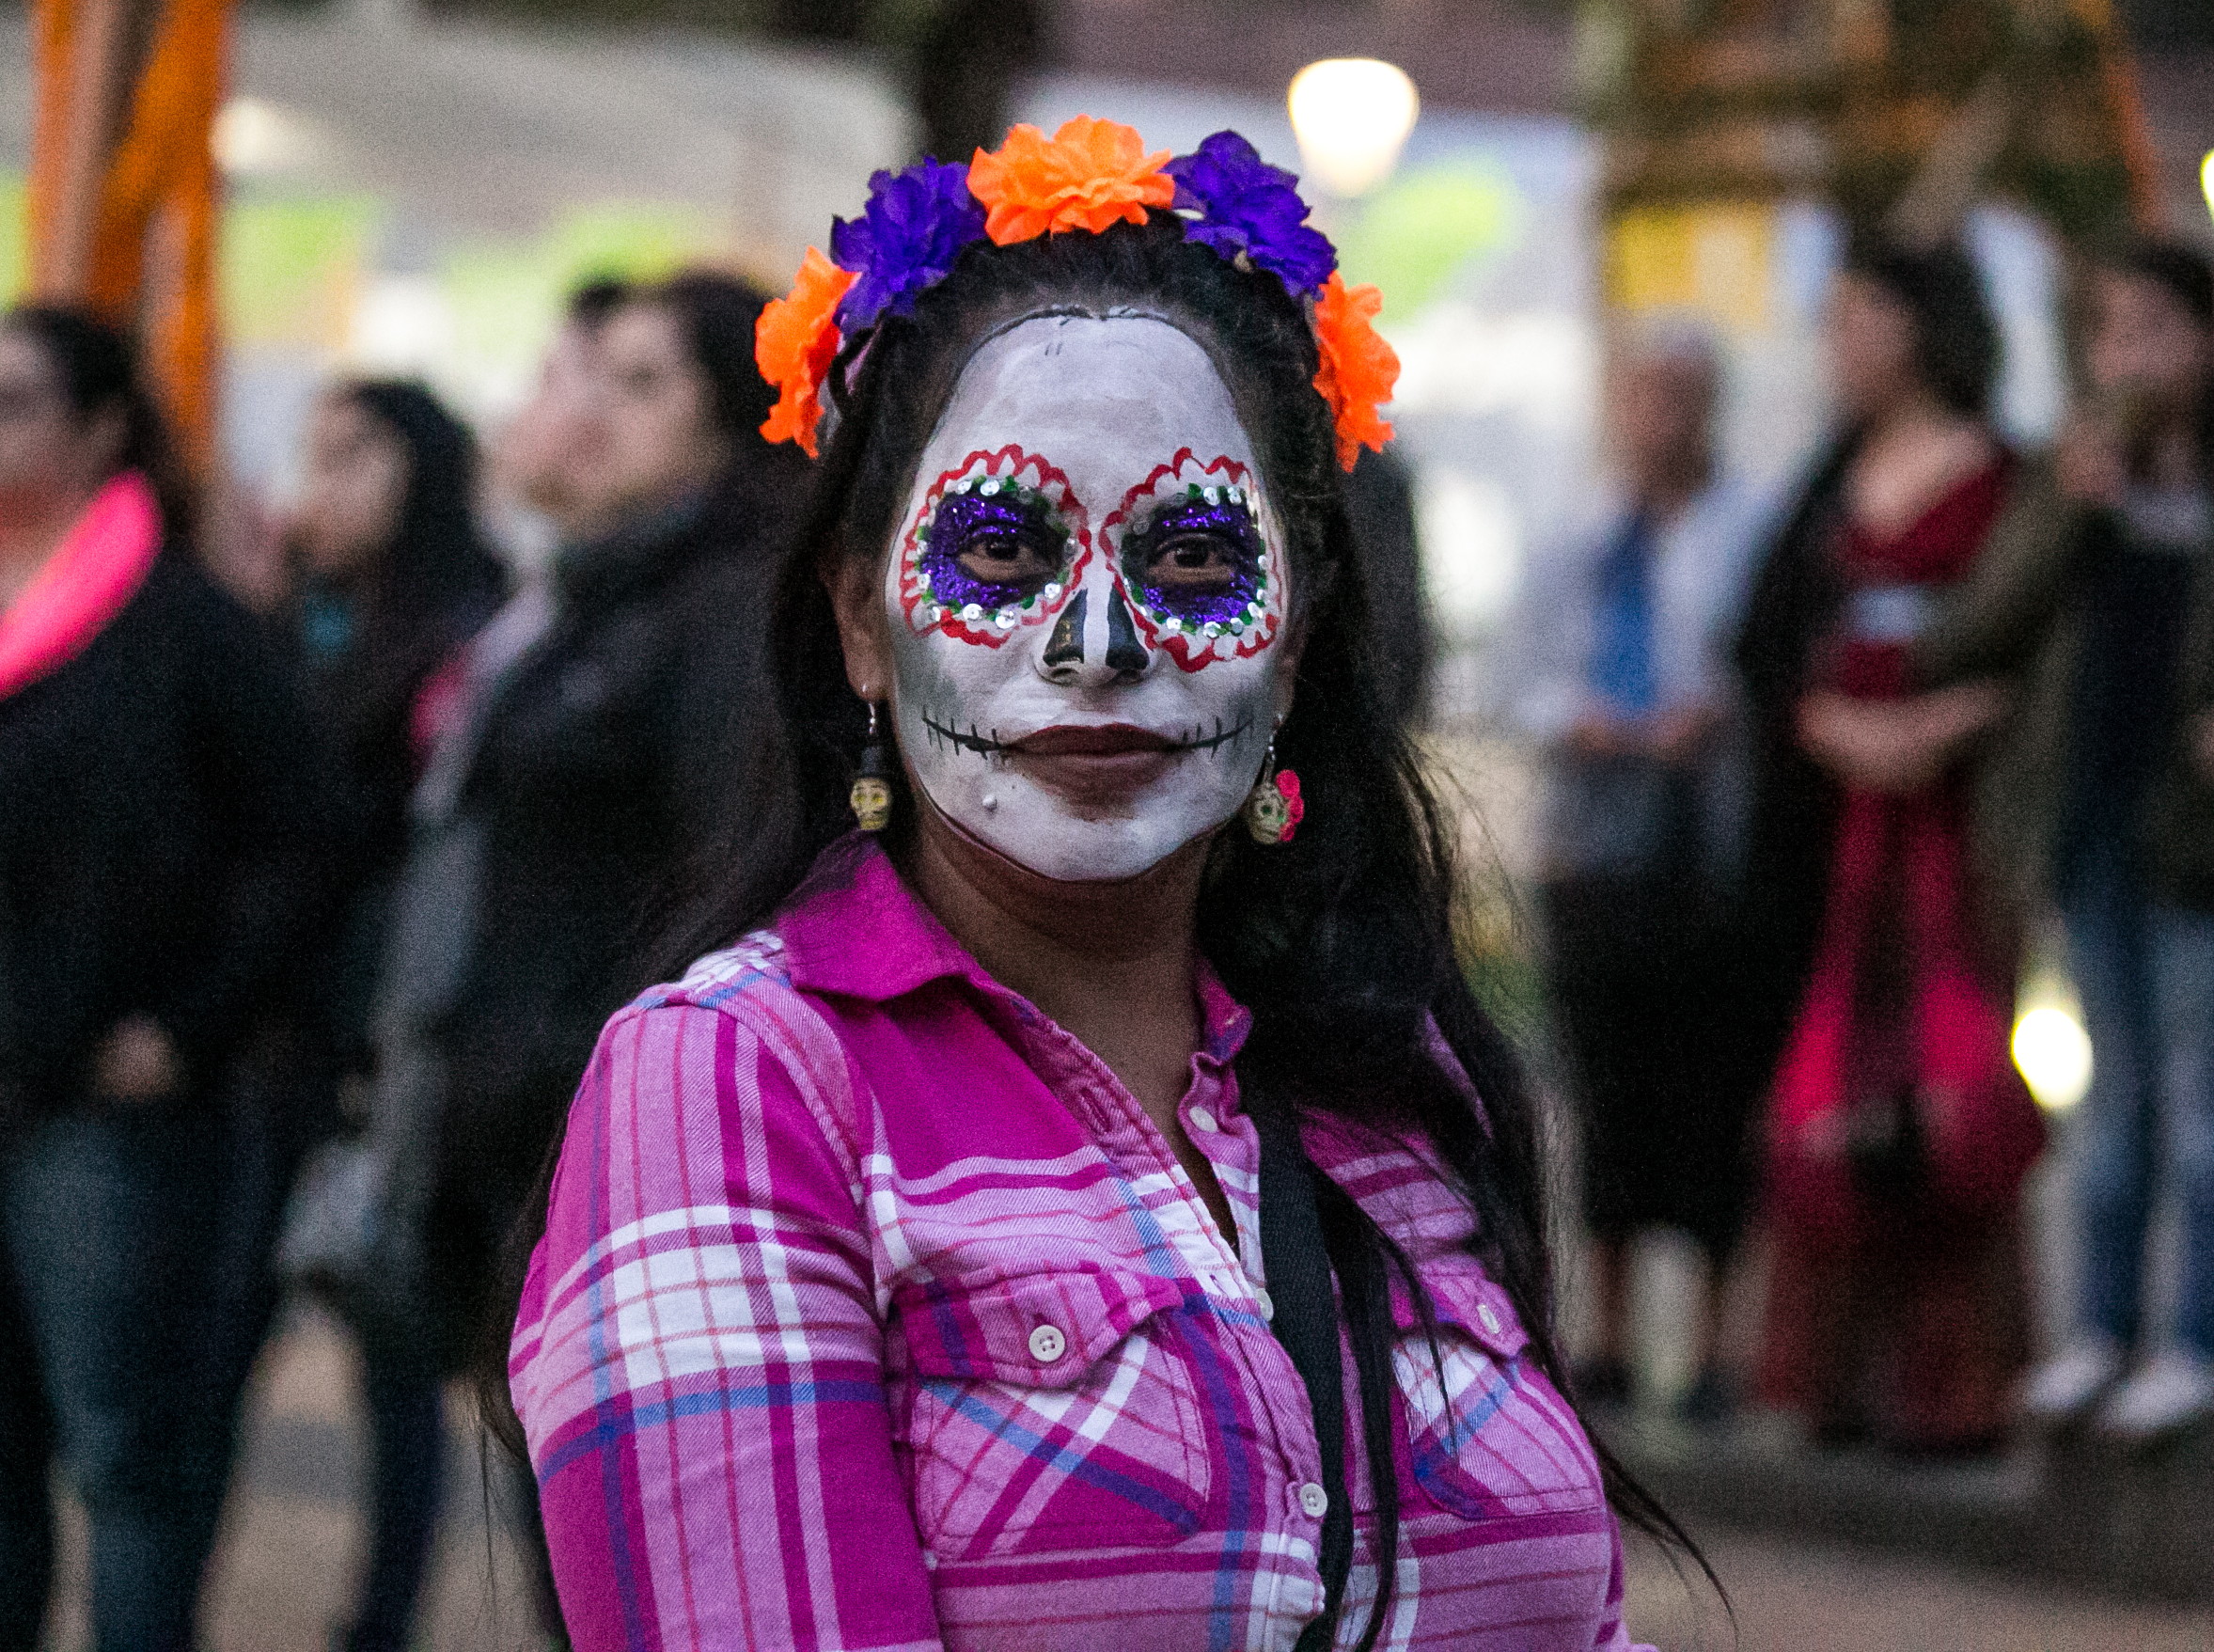 10/31/17 - 7:00pm - A woman with celebratory face paint waits to watch a traditional performance in the Patzcuaro town square.